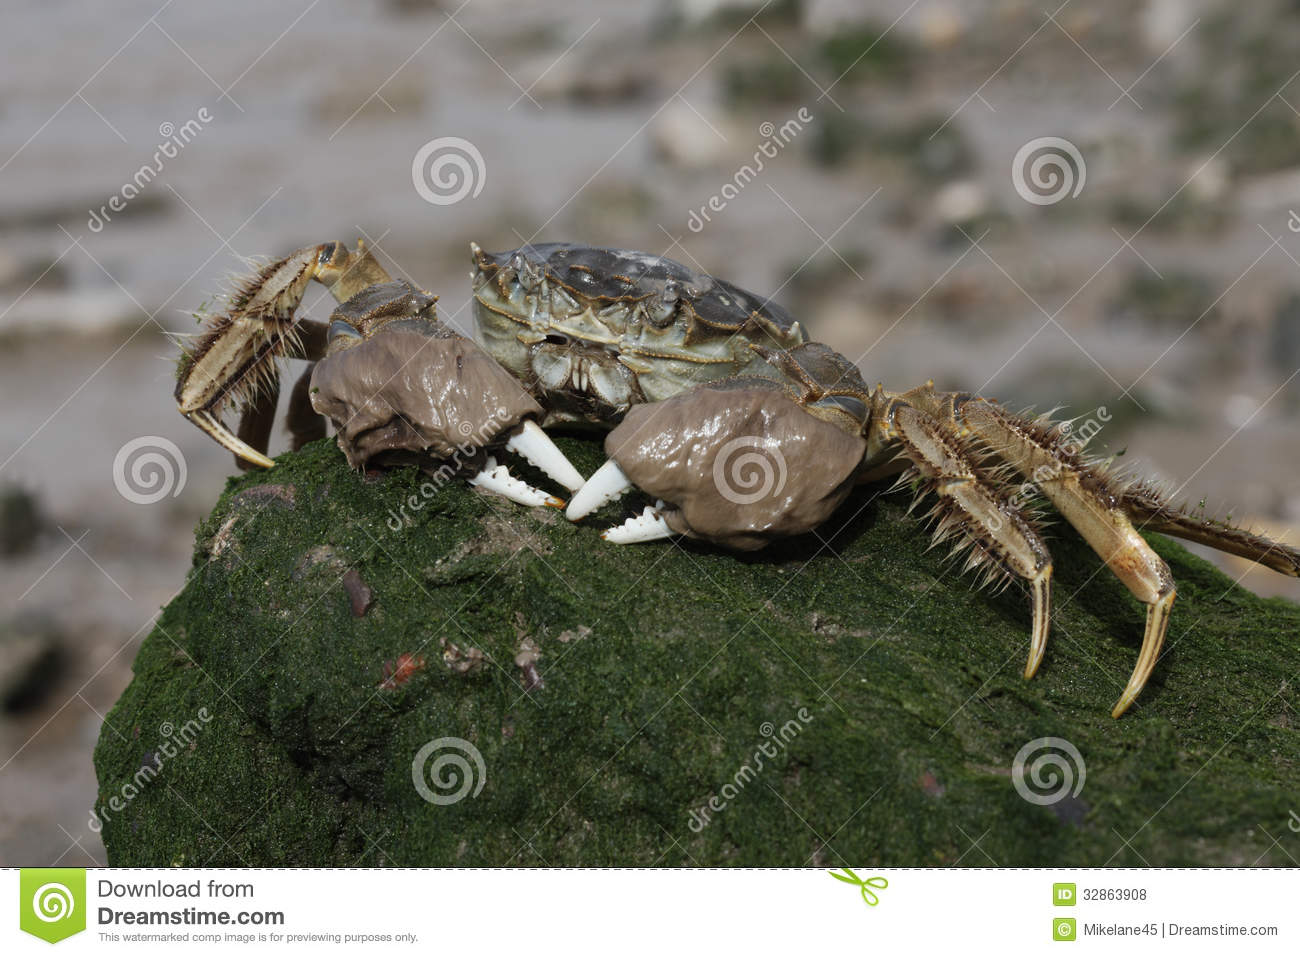 Chinese mitten crab eriocheir sinensis burrows in banks of river